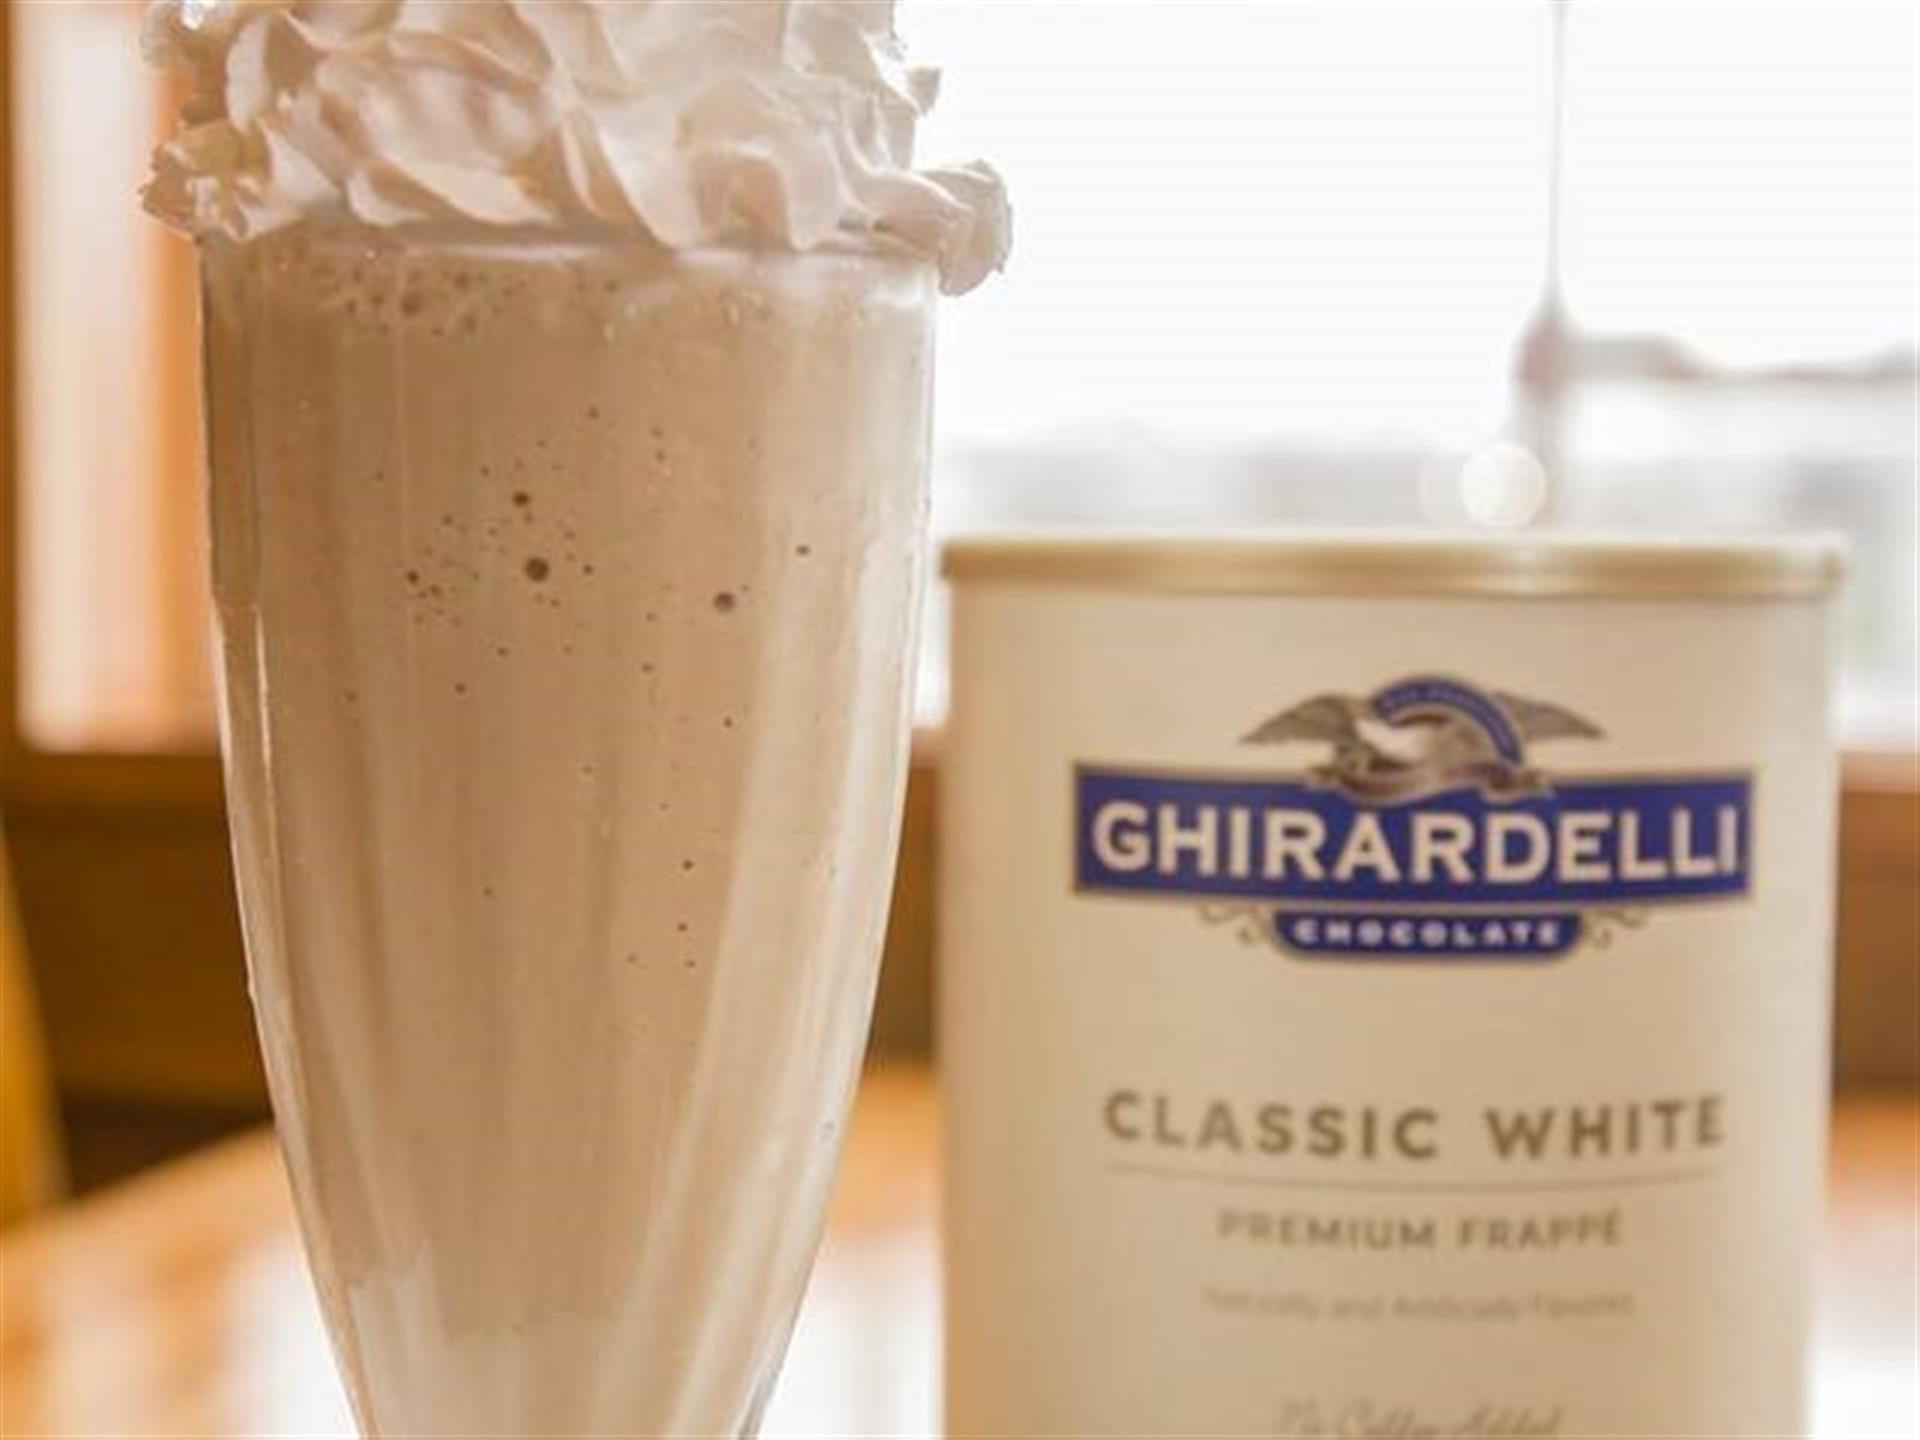 Vanilla shake made with Ghirardelli Classic White ice cream and topped with whipped cream